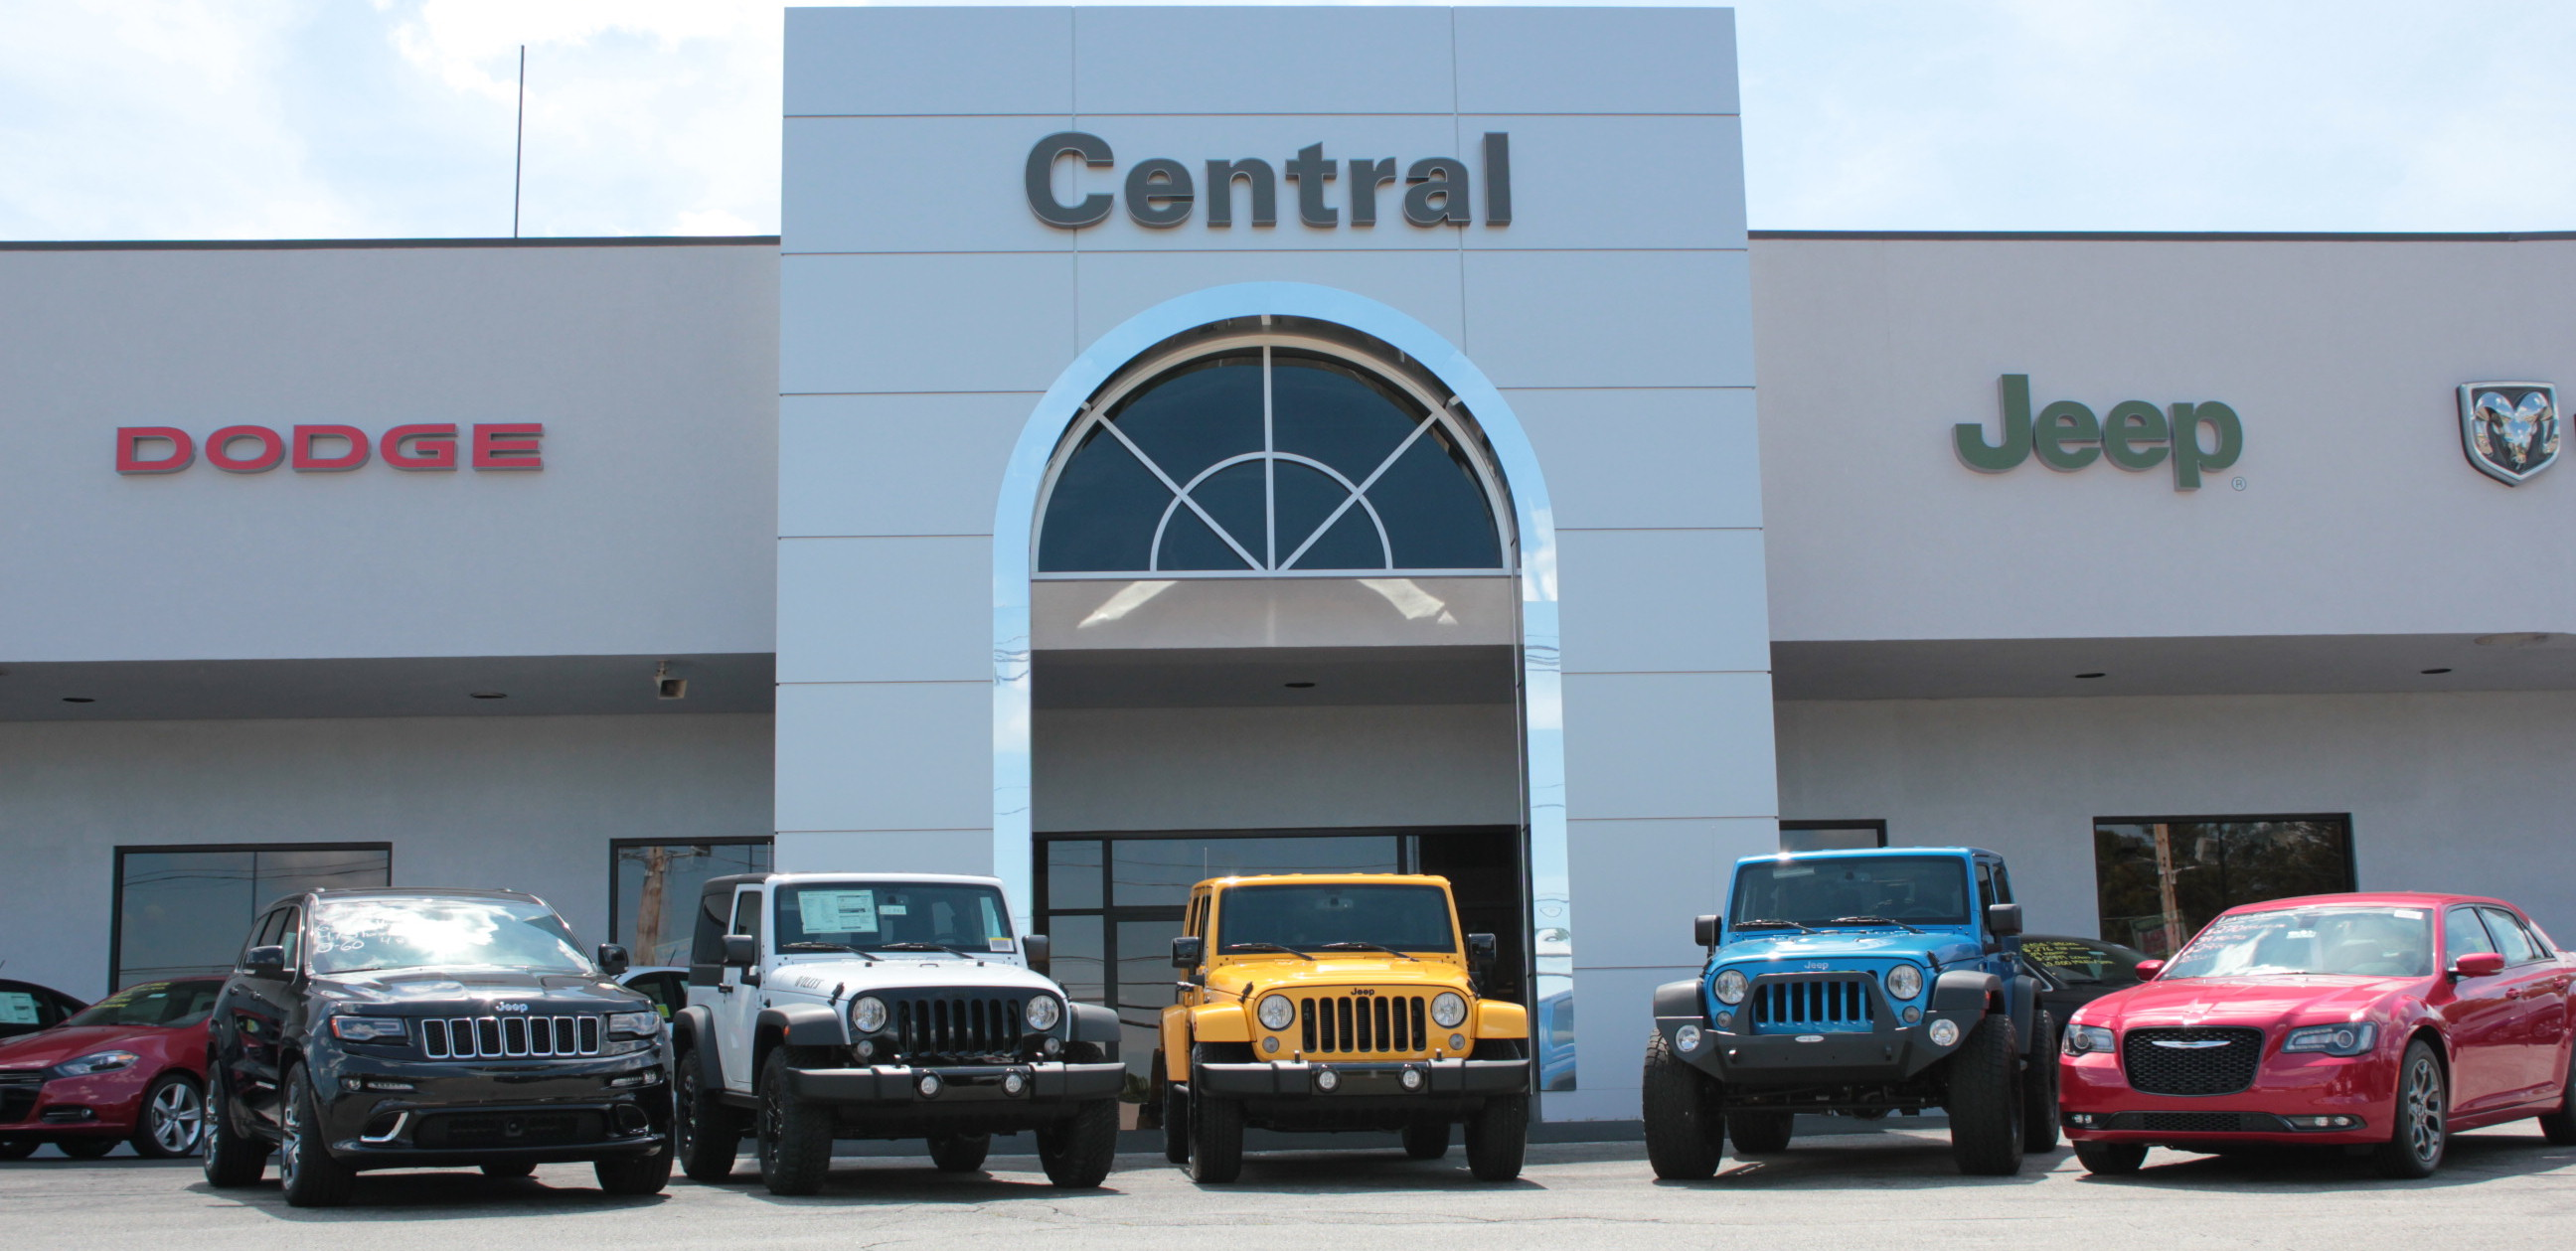 About Central Jeep Chrysler Dodge RAM of Raynham a ...